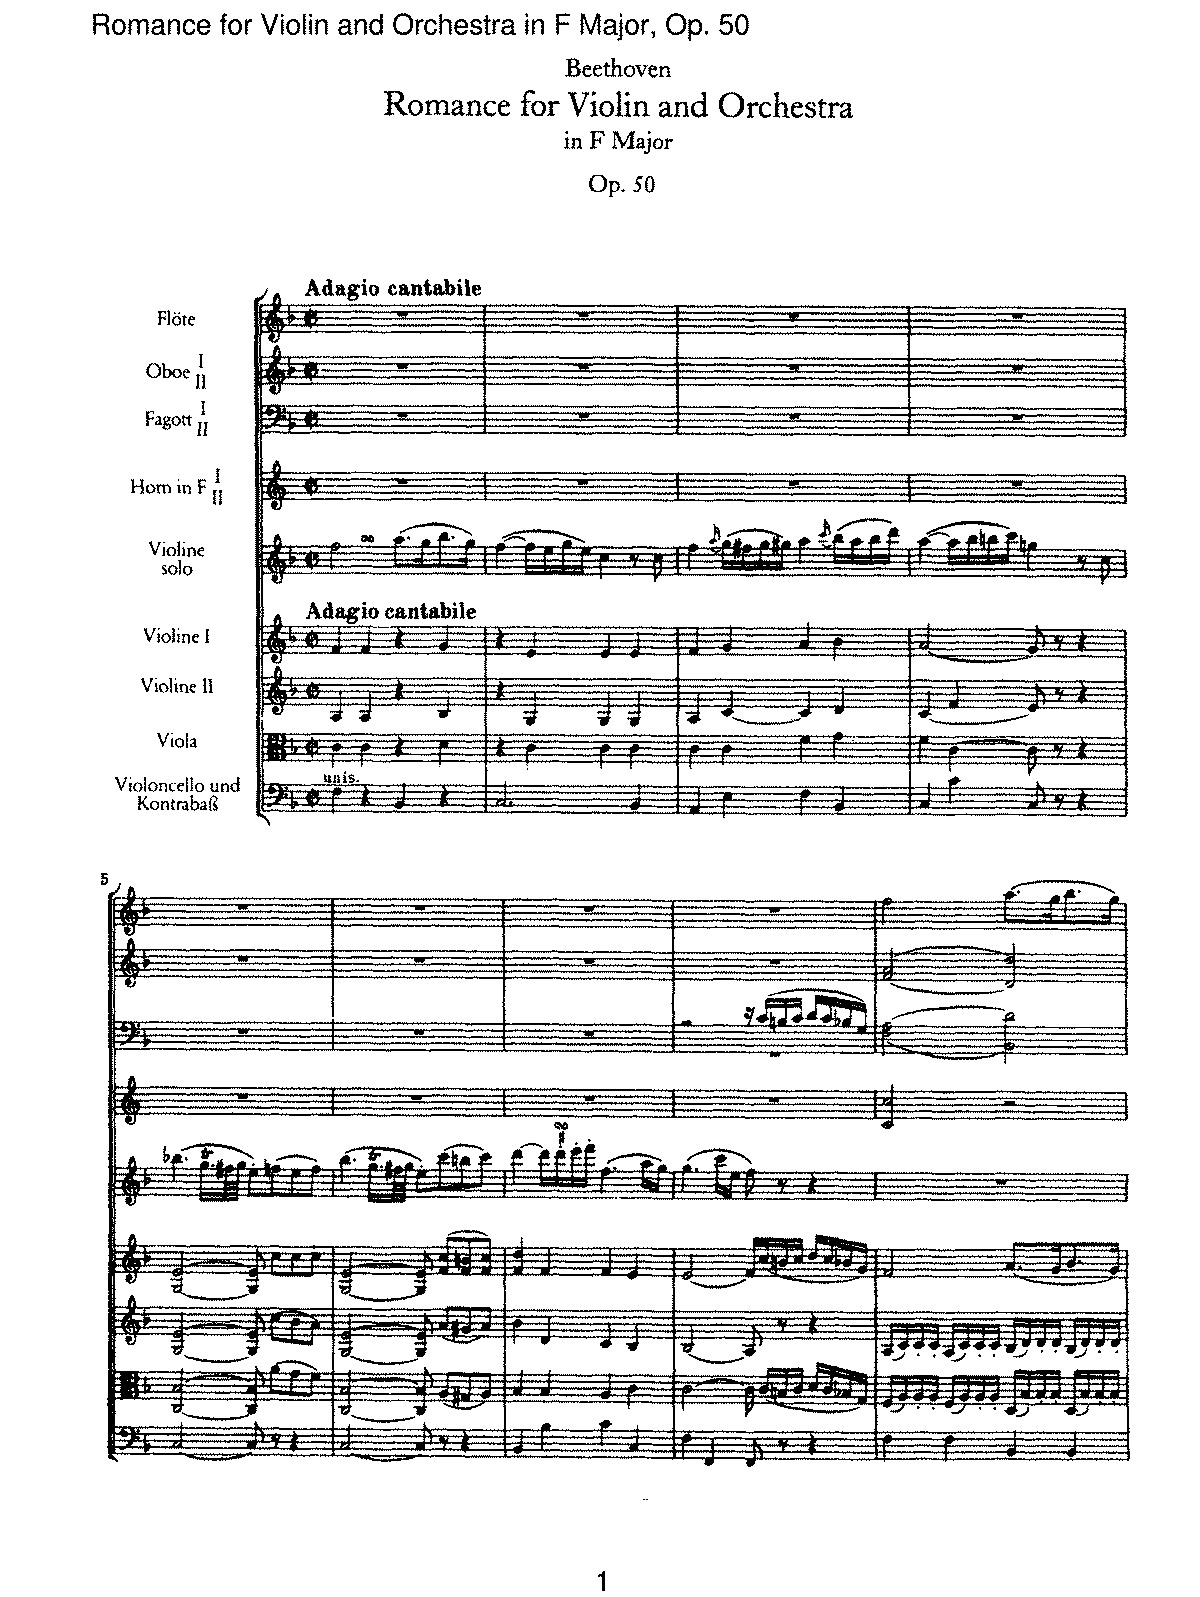 Beethoven - Romance for Violin and Orchestra in F Major, Op 50.pdf